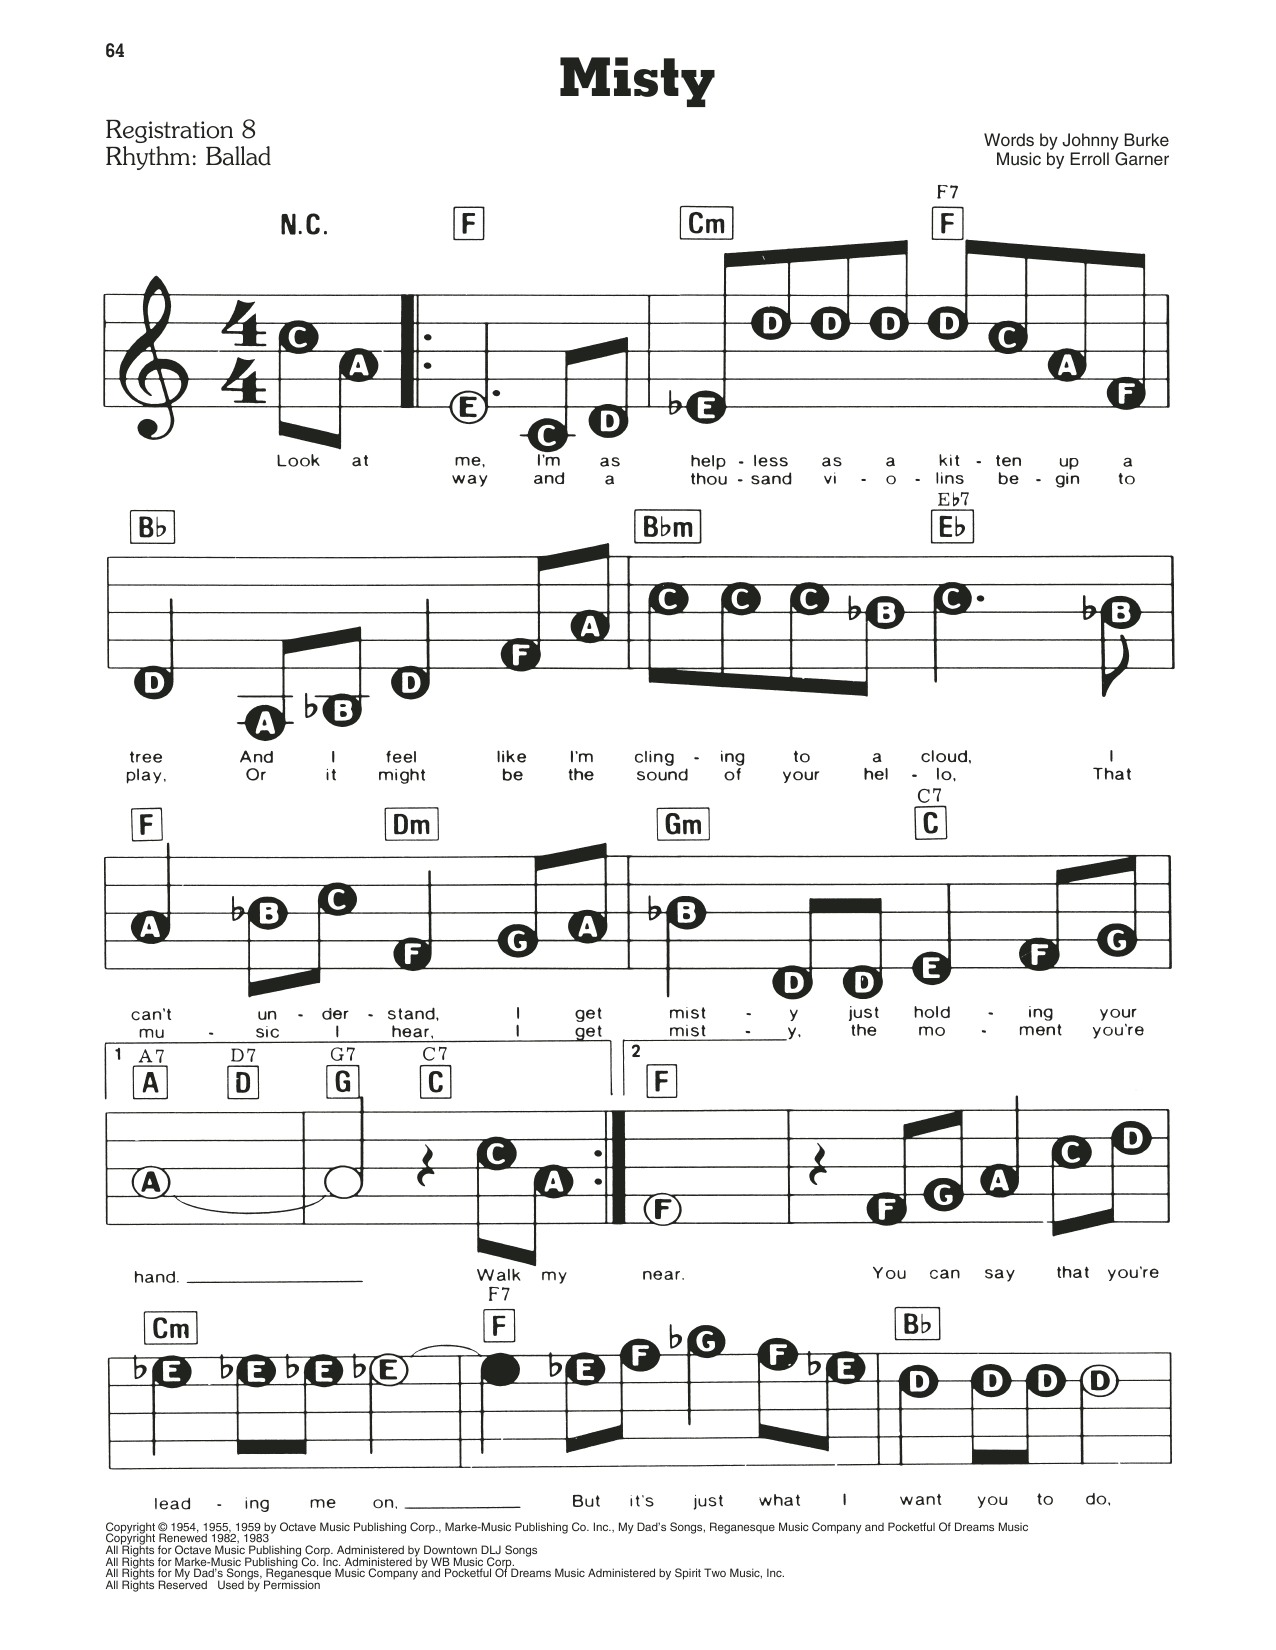 Erroll Garner Misty Sheet Music Notes Chords Printable Jazz